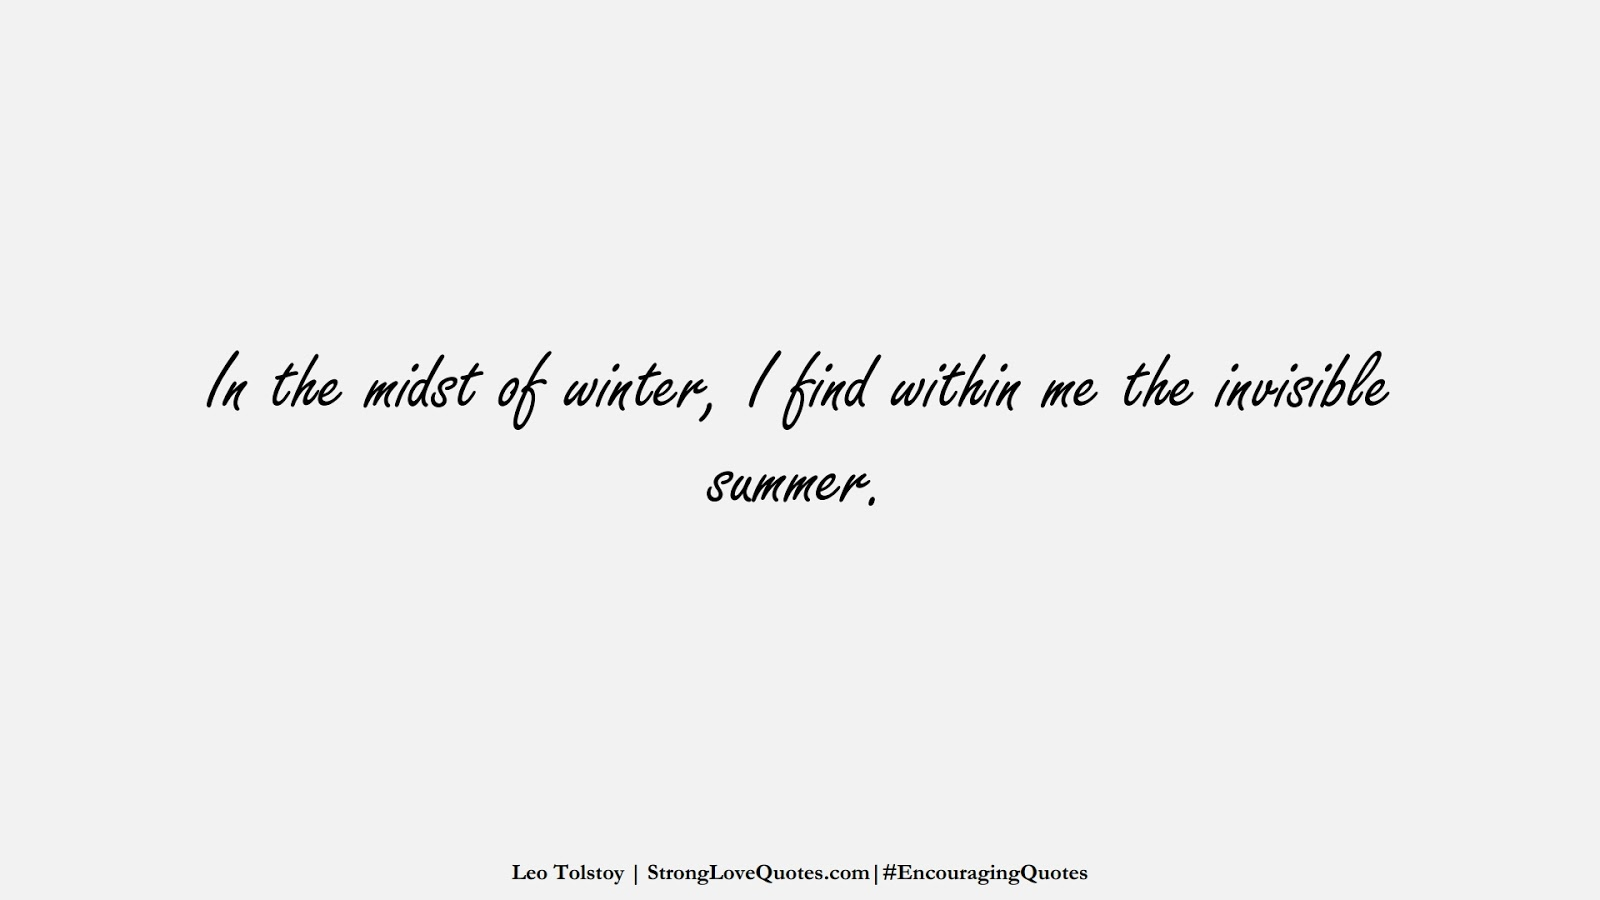 In the midst of winter, I find within me the invisible summer. (Leo Tolstoy);  #EncouragingQuotes